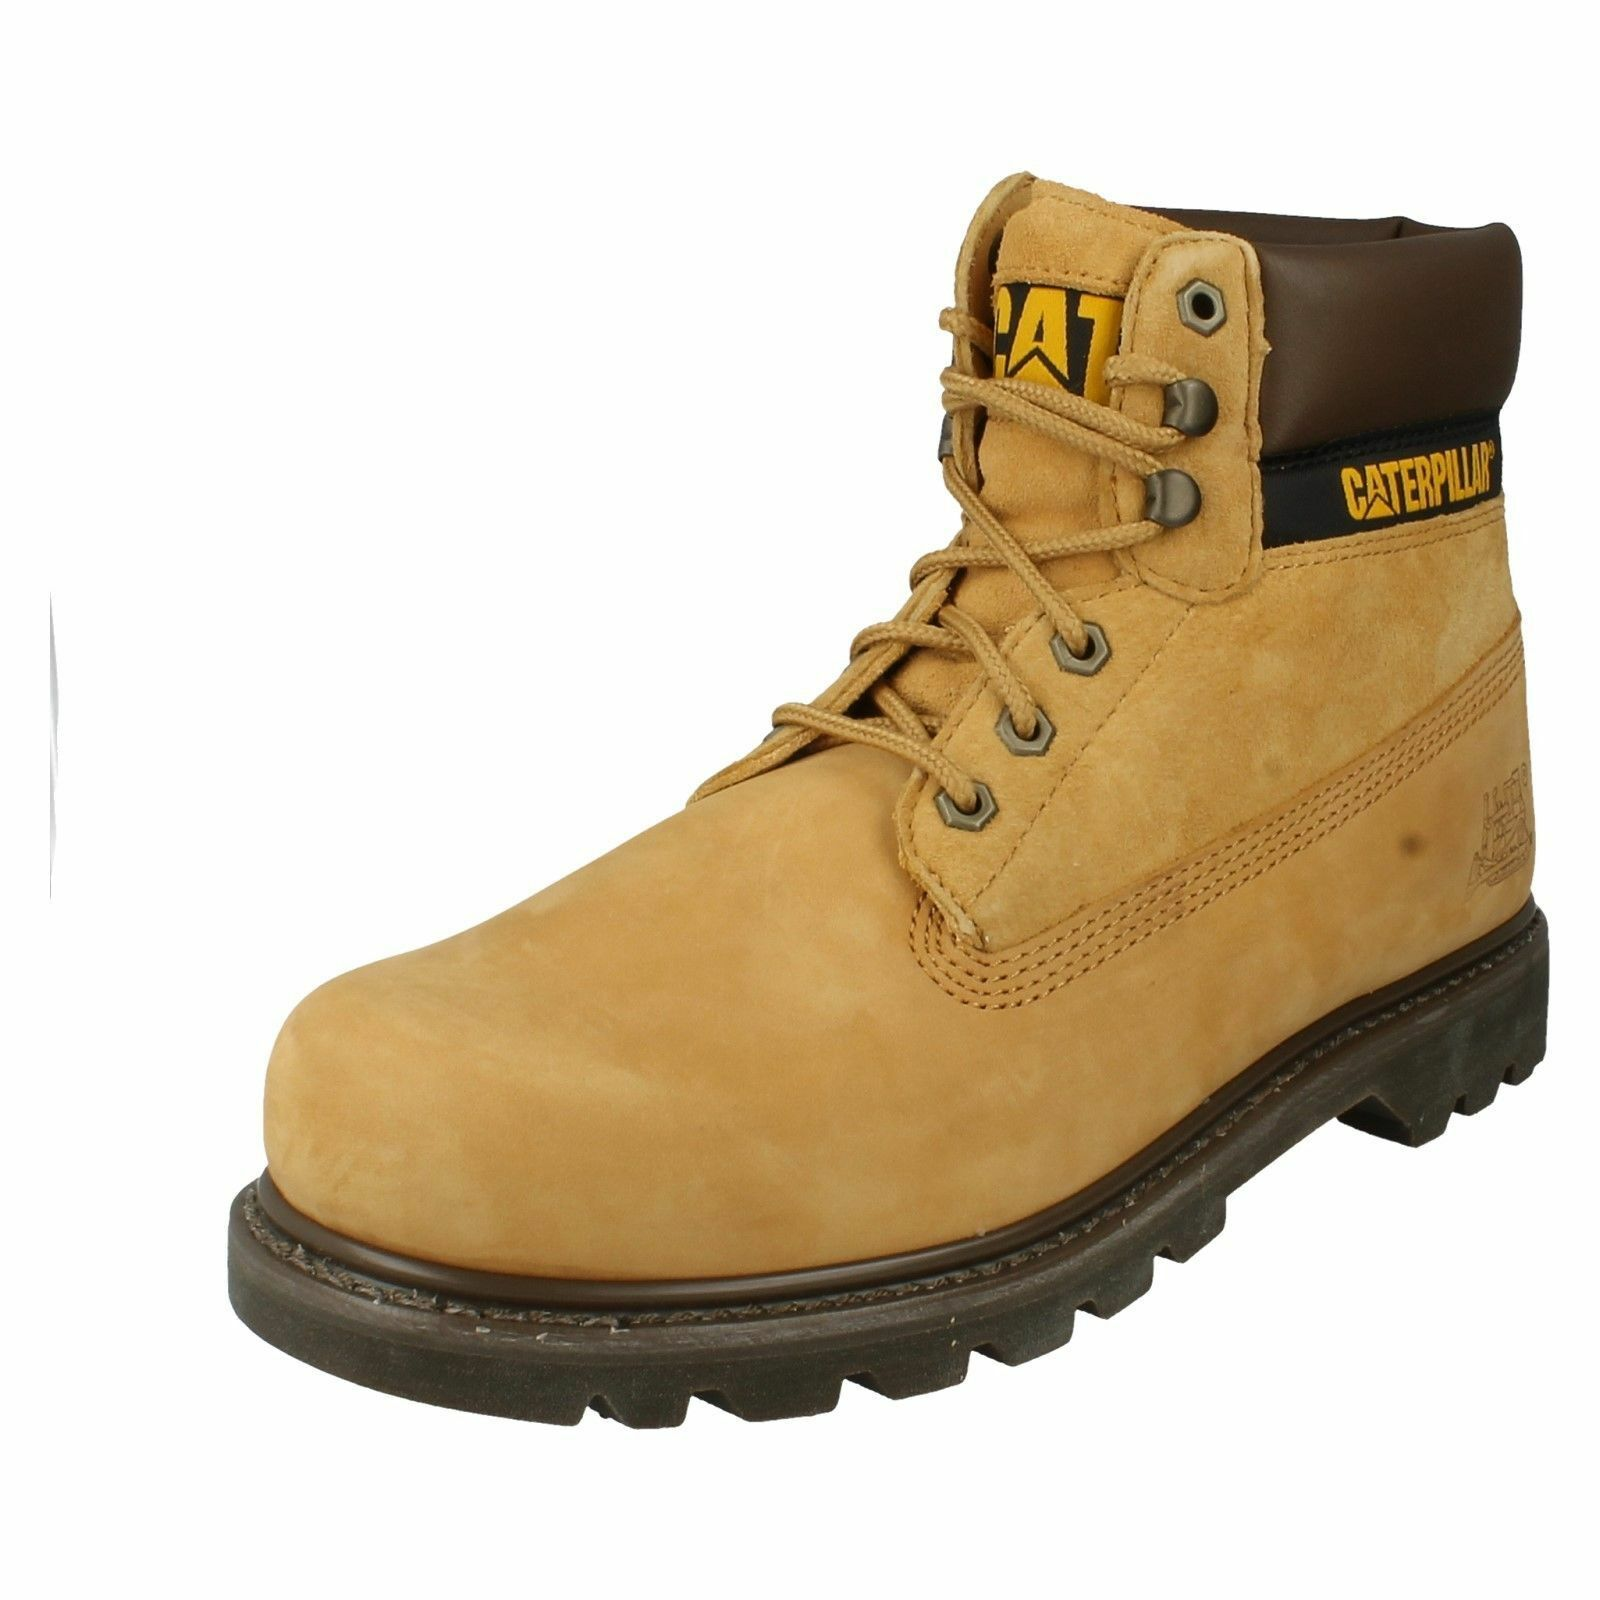 SALE Caterpillar 'colorado' Mens Honey Leather Texile Lace Up Work Boots